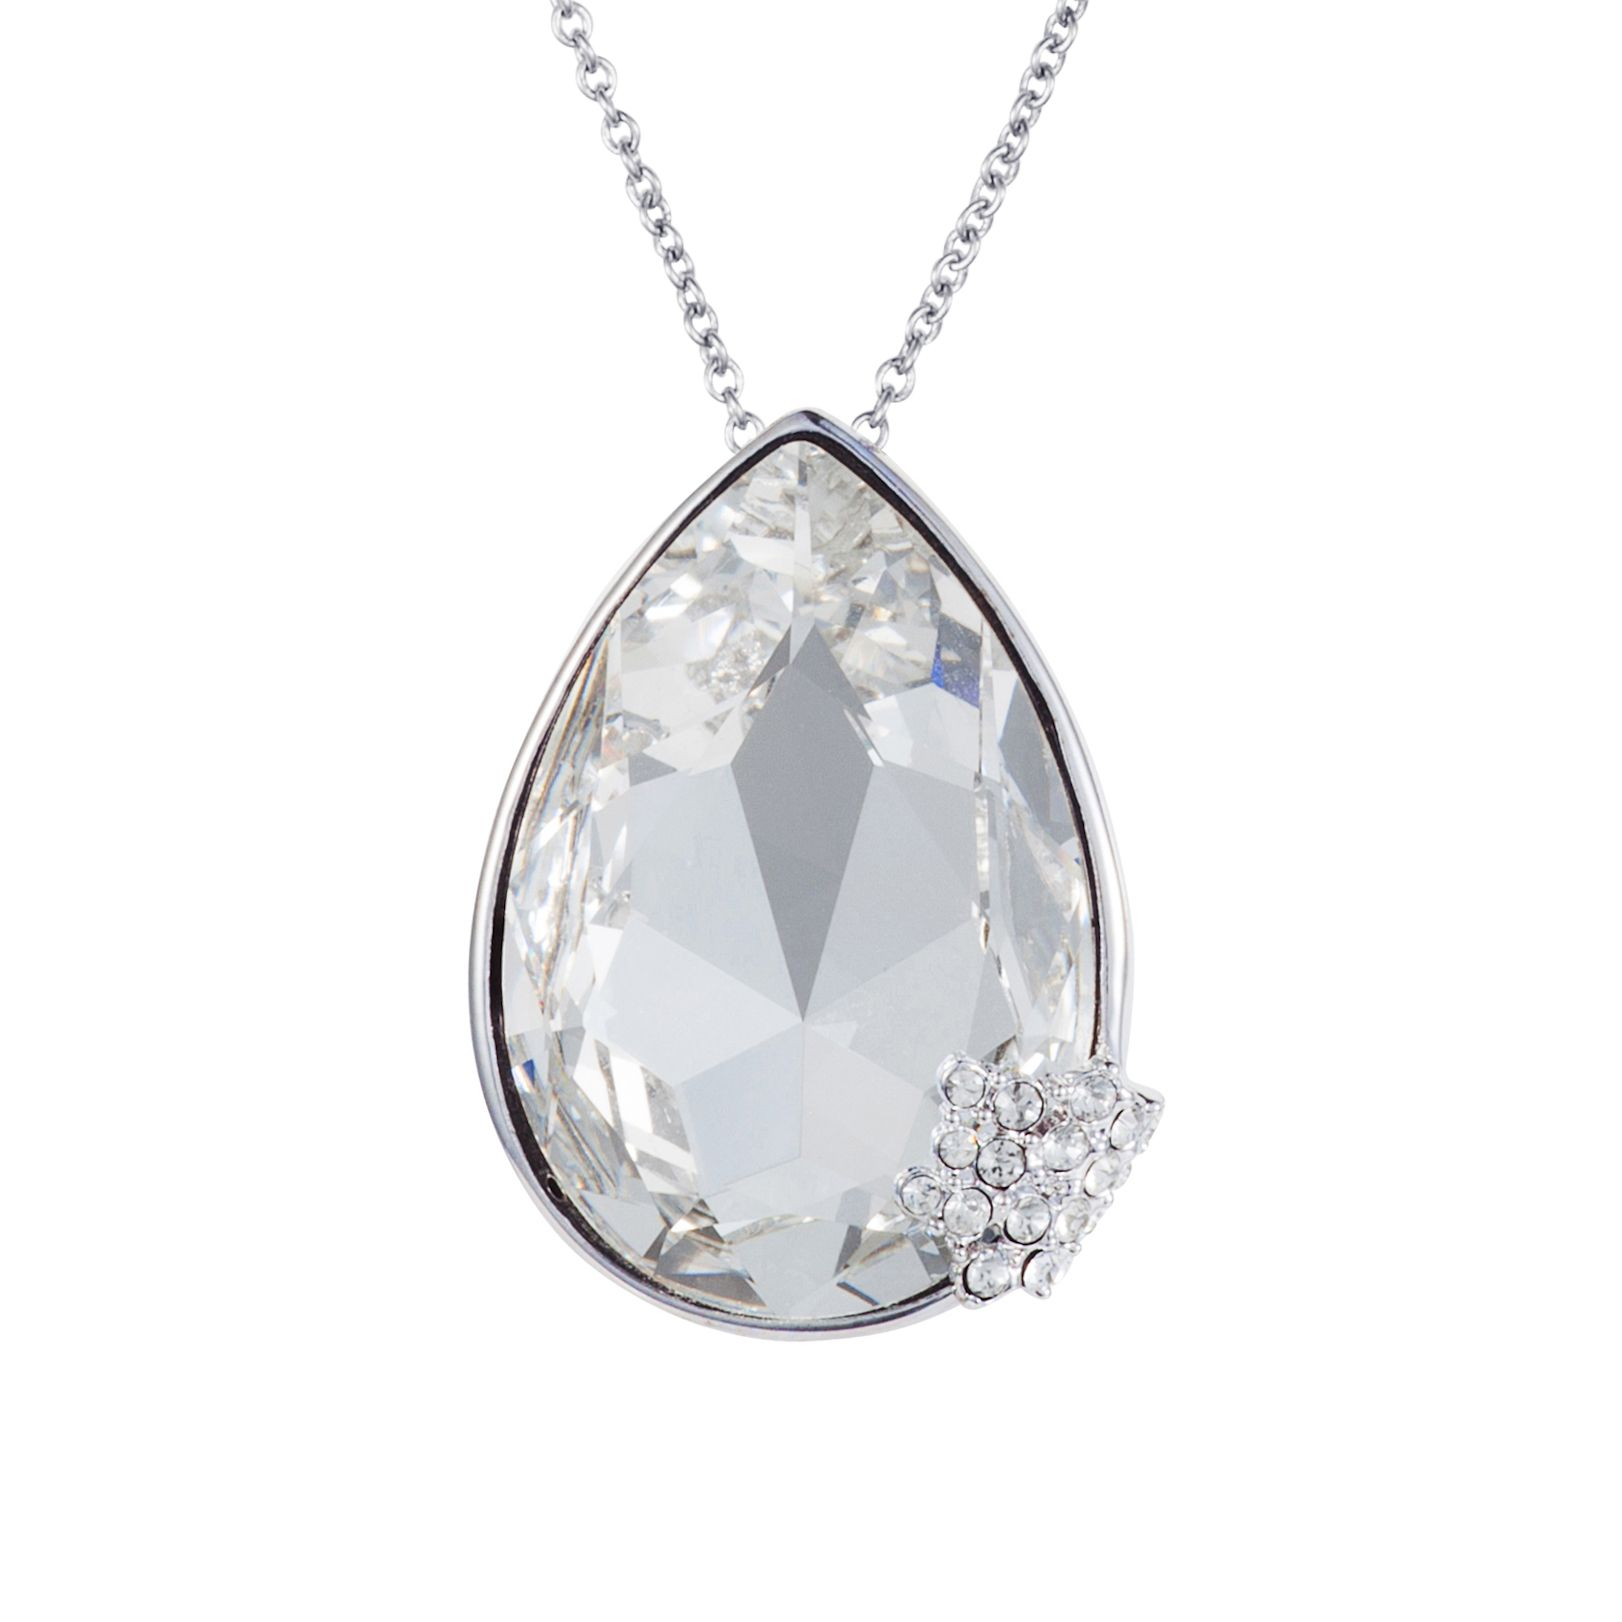 Rhodium plated titania pear cut pendant